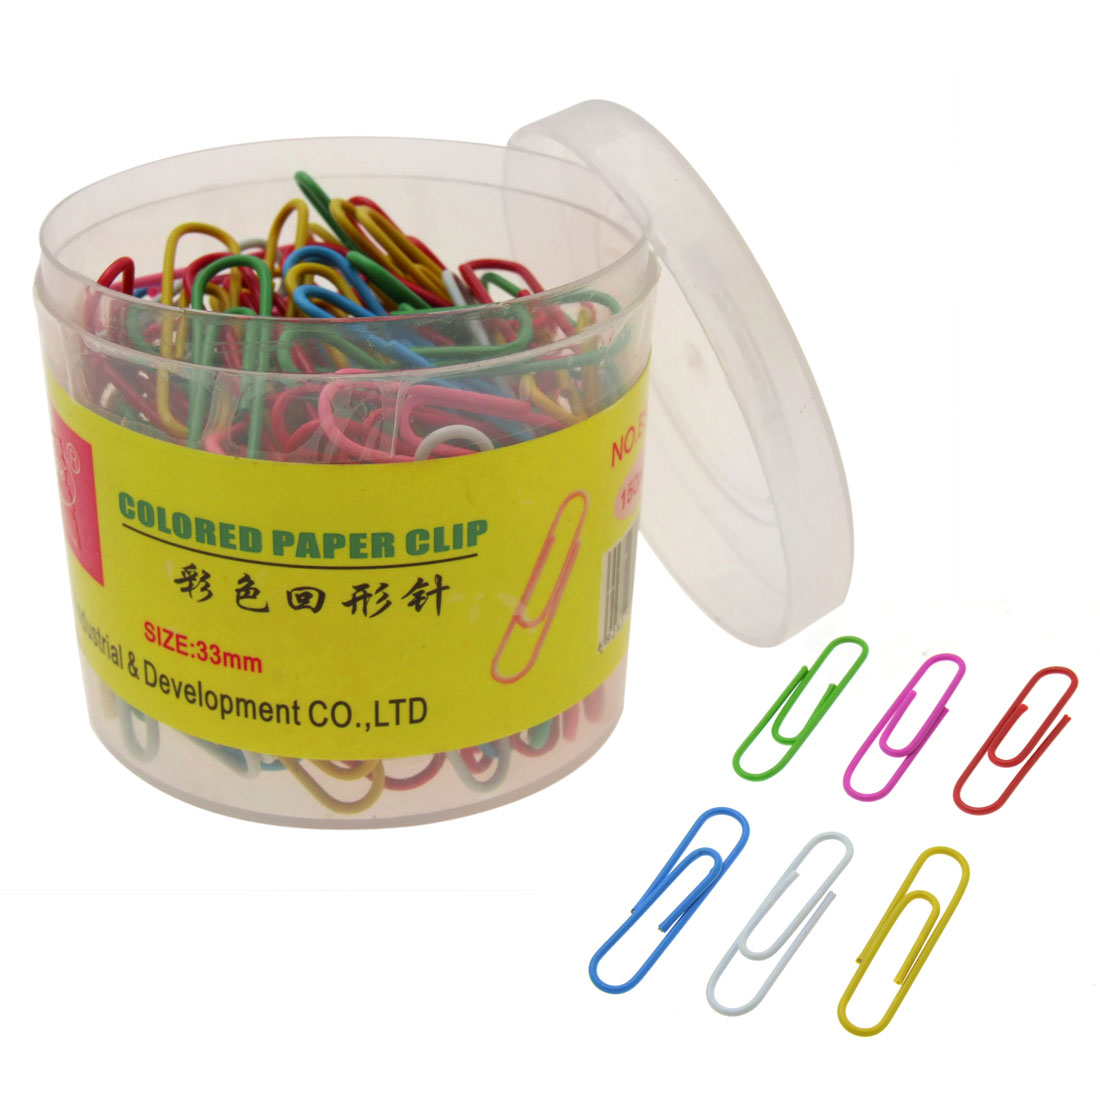 150 Pieces Bucket Packing Universal Office Modern Colored Wire Paper Money Clip Set